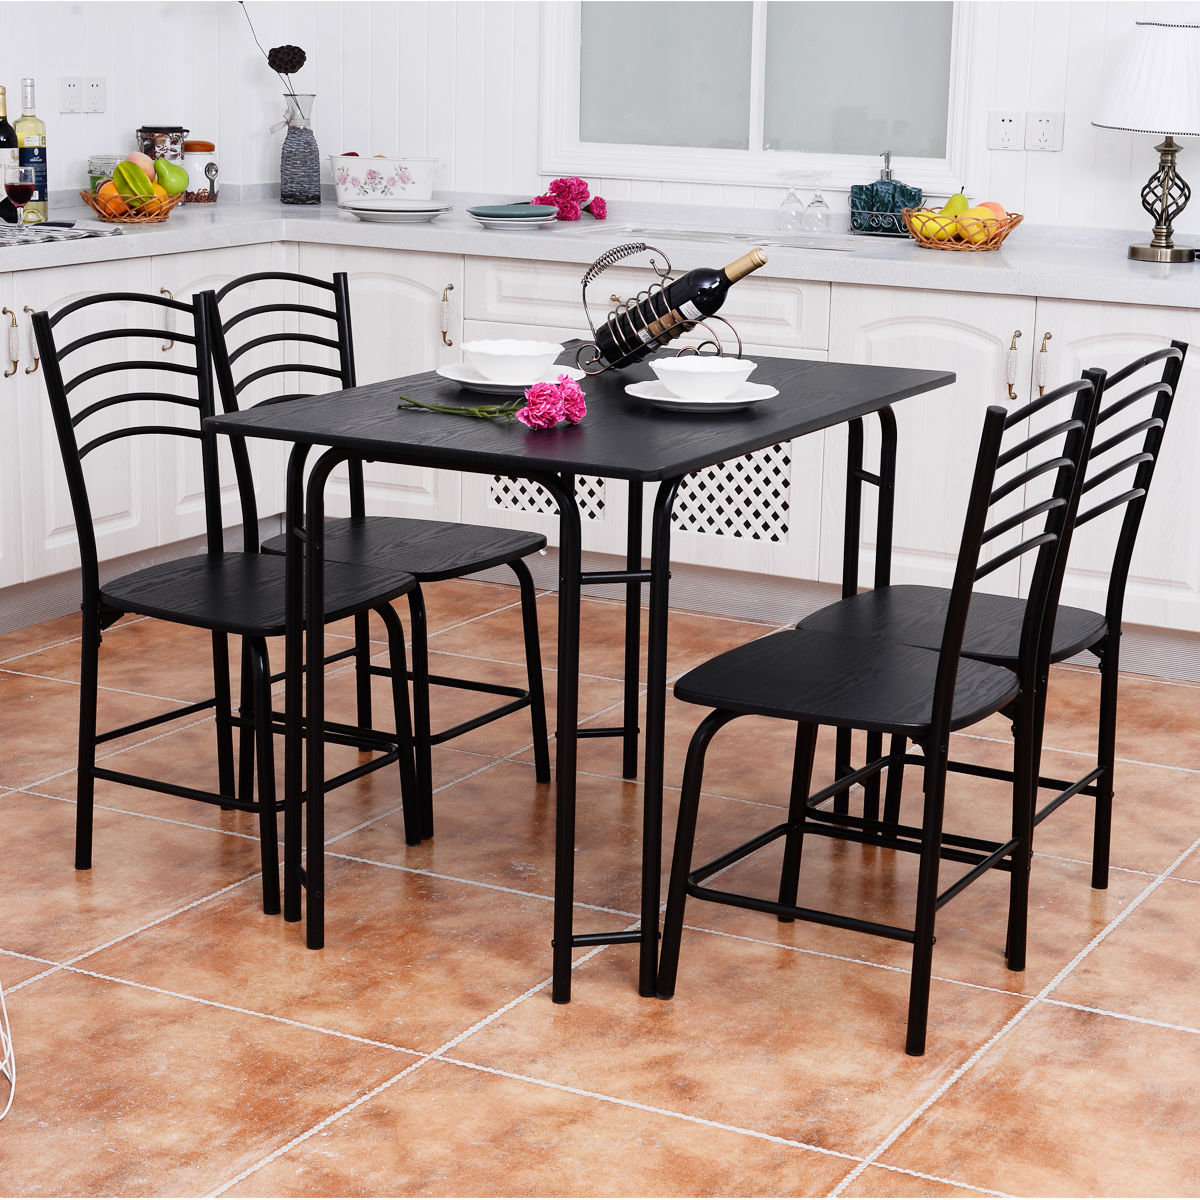 Ephraim 5 Piece Dining Sets Inside Most Up To Date Details About Winston Porter Ephraim 5 Piece Dining Set (View 6 of 20)